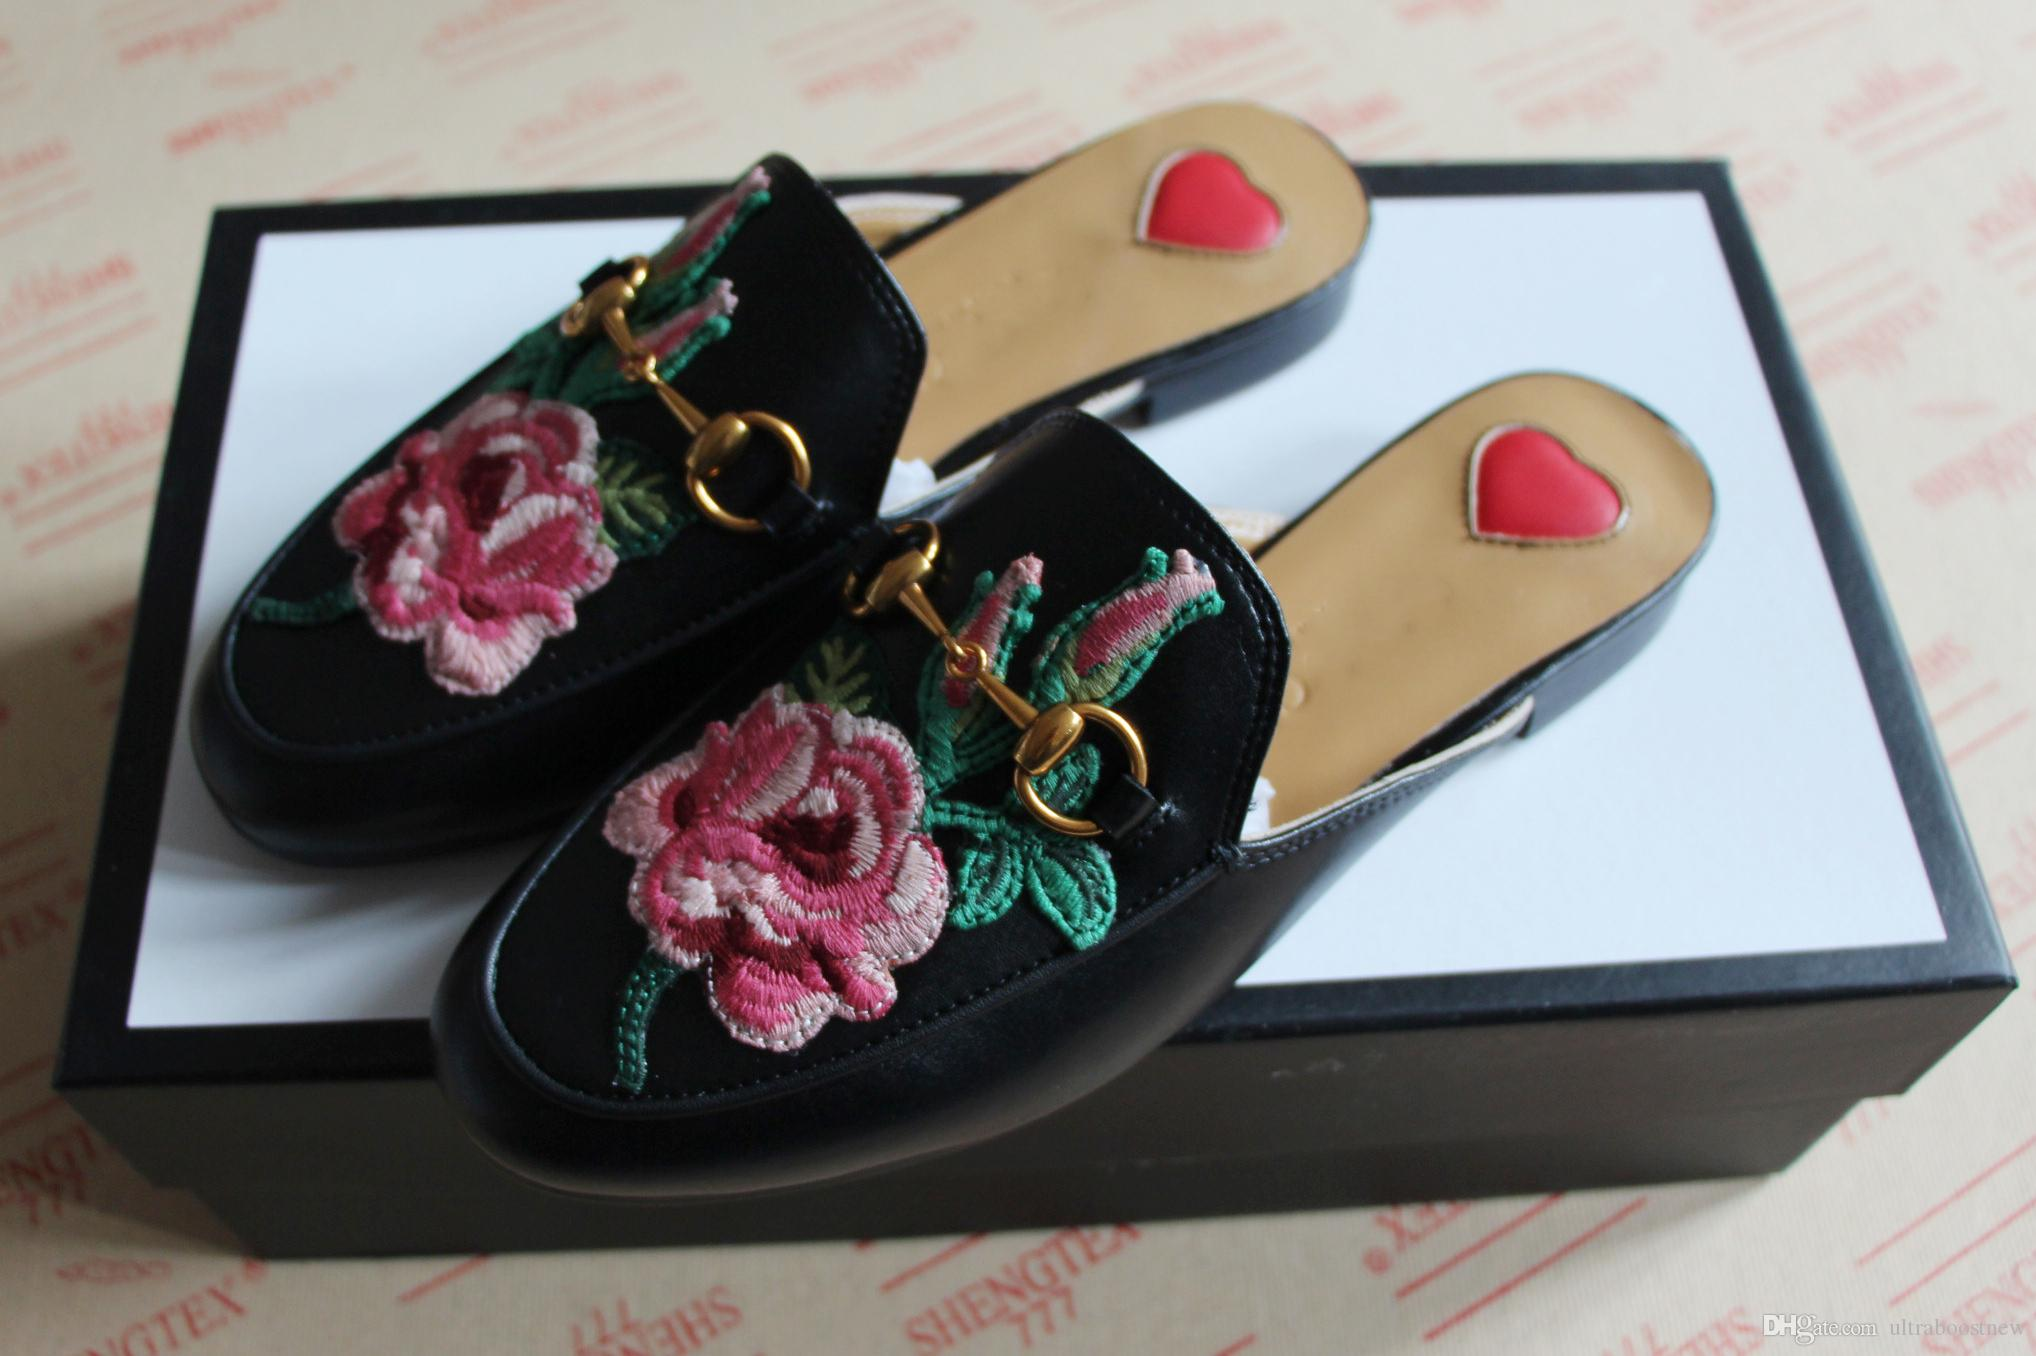 a34f1bd6808 2019 NEW Fashion Princetown Horsebit Slipper On Loafer Embroidery Tiger  Rose Flower Real Leather Black Designer Shoes Man Women Luxury Sandals From  ...